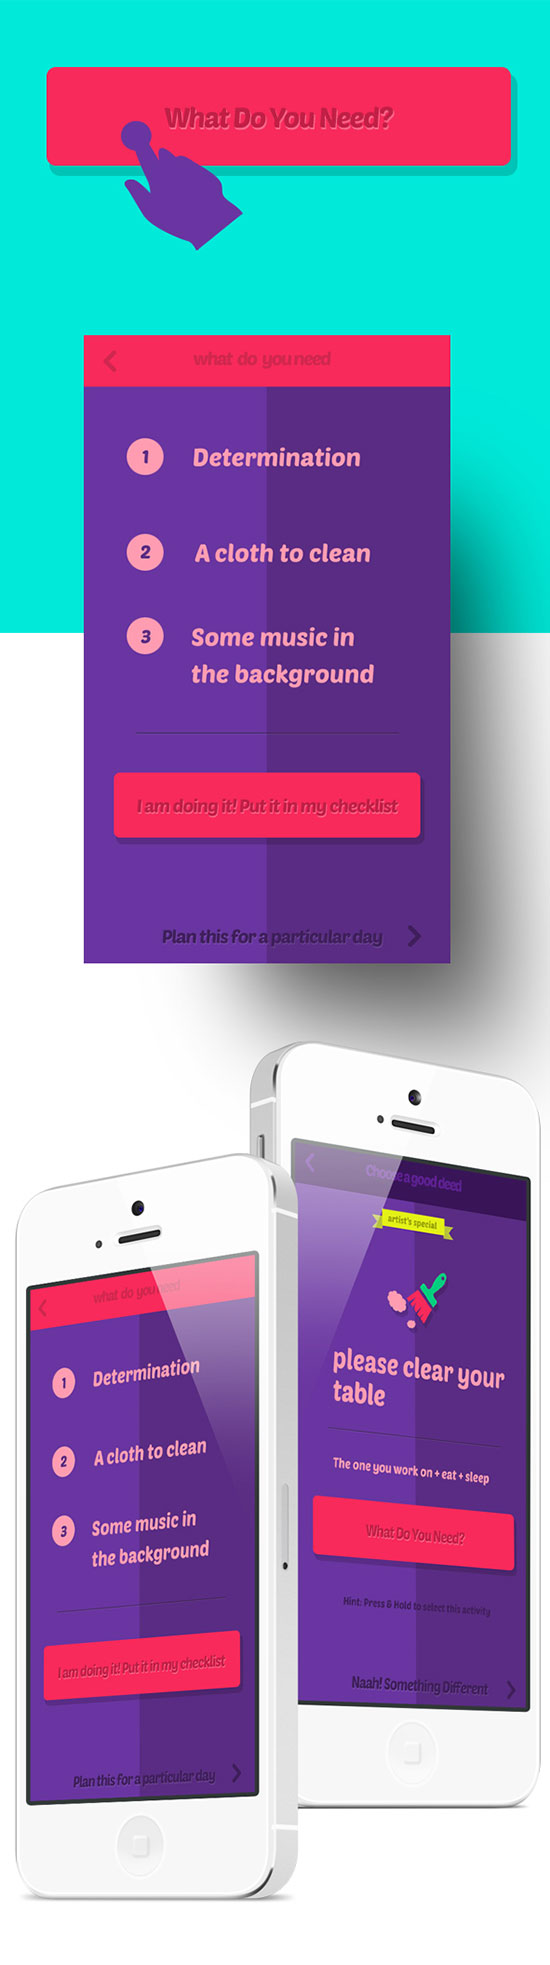 Do-something-good-iPhone-app-design-inspiration-19